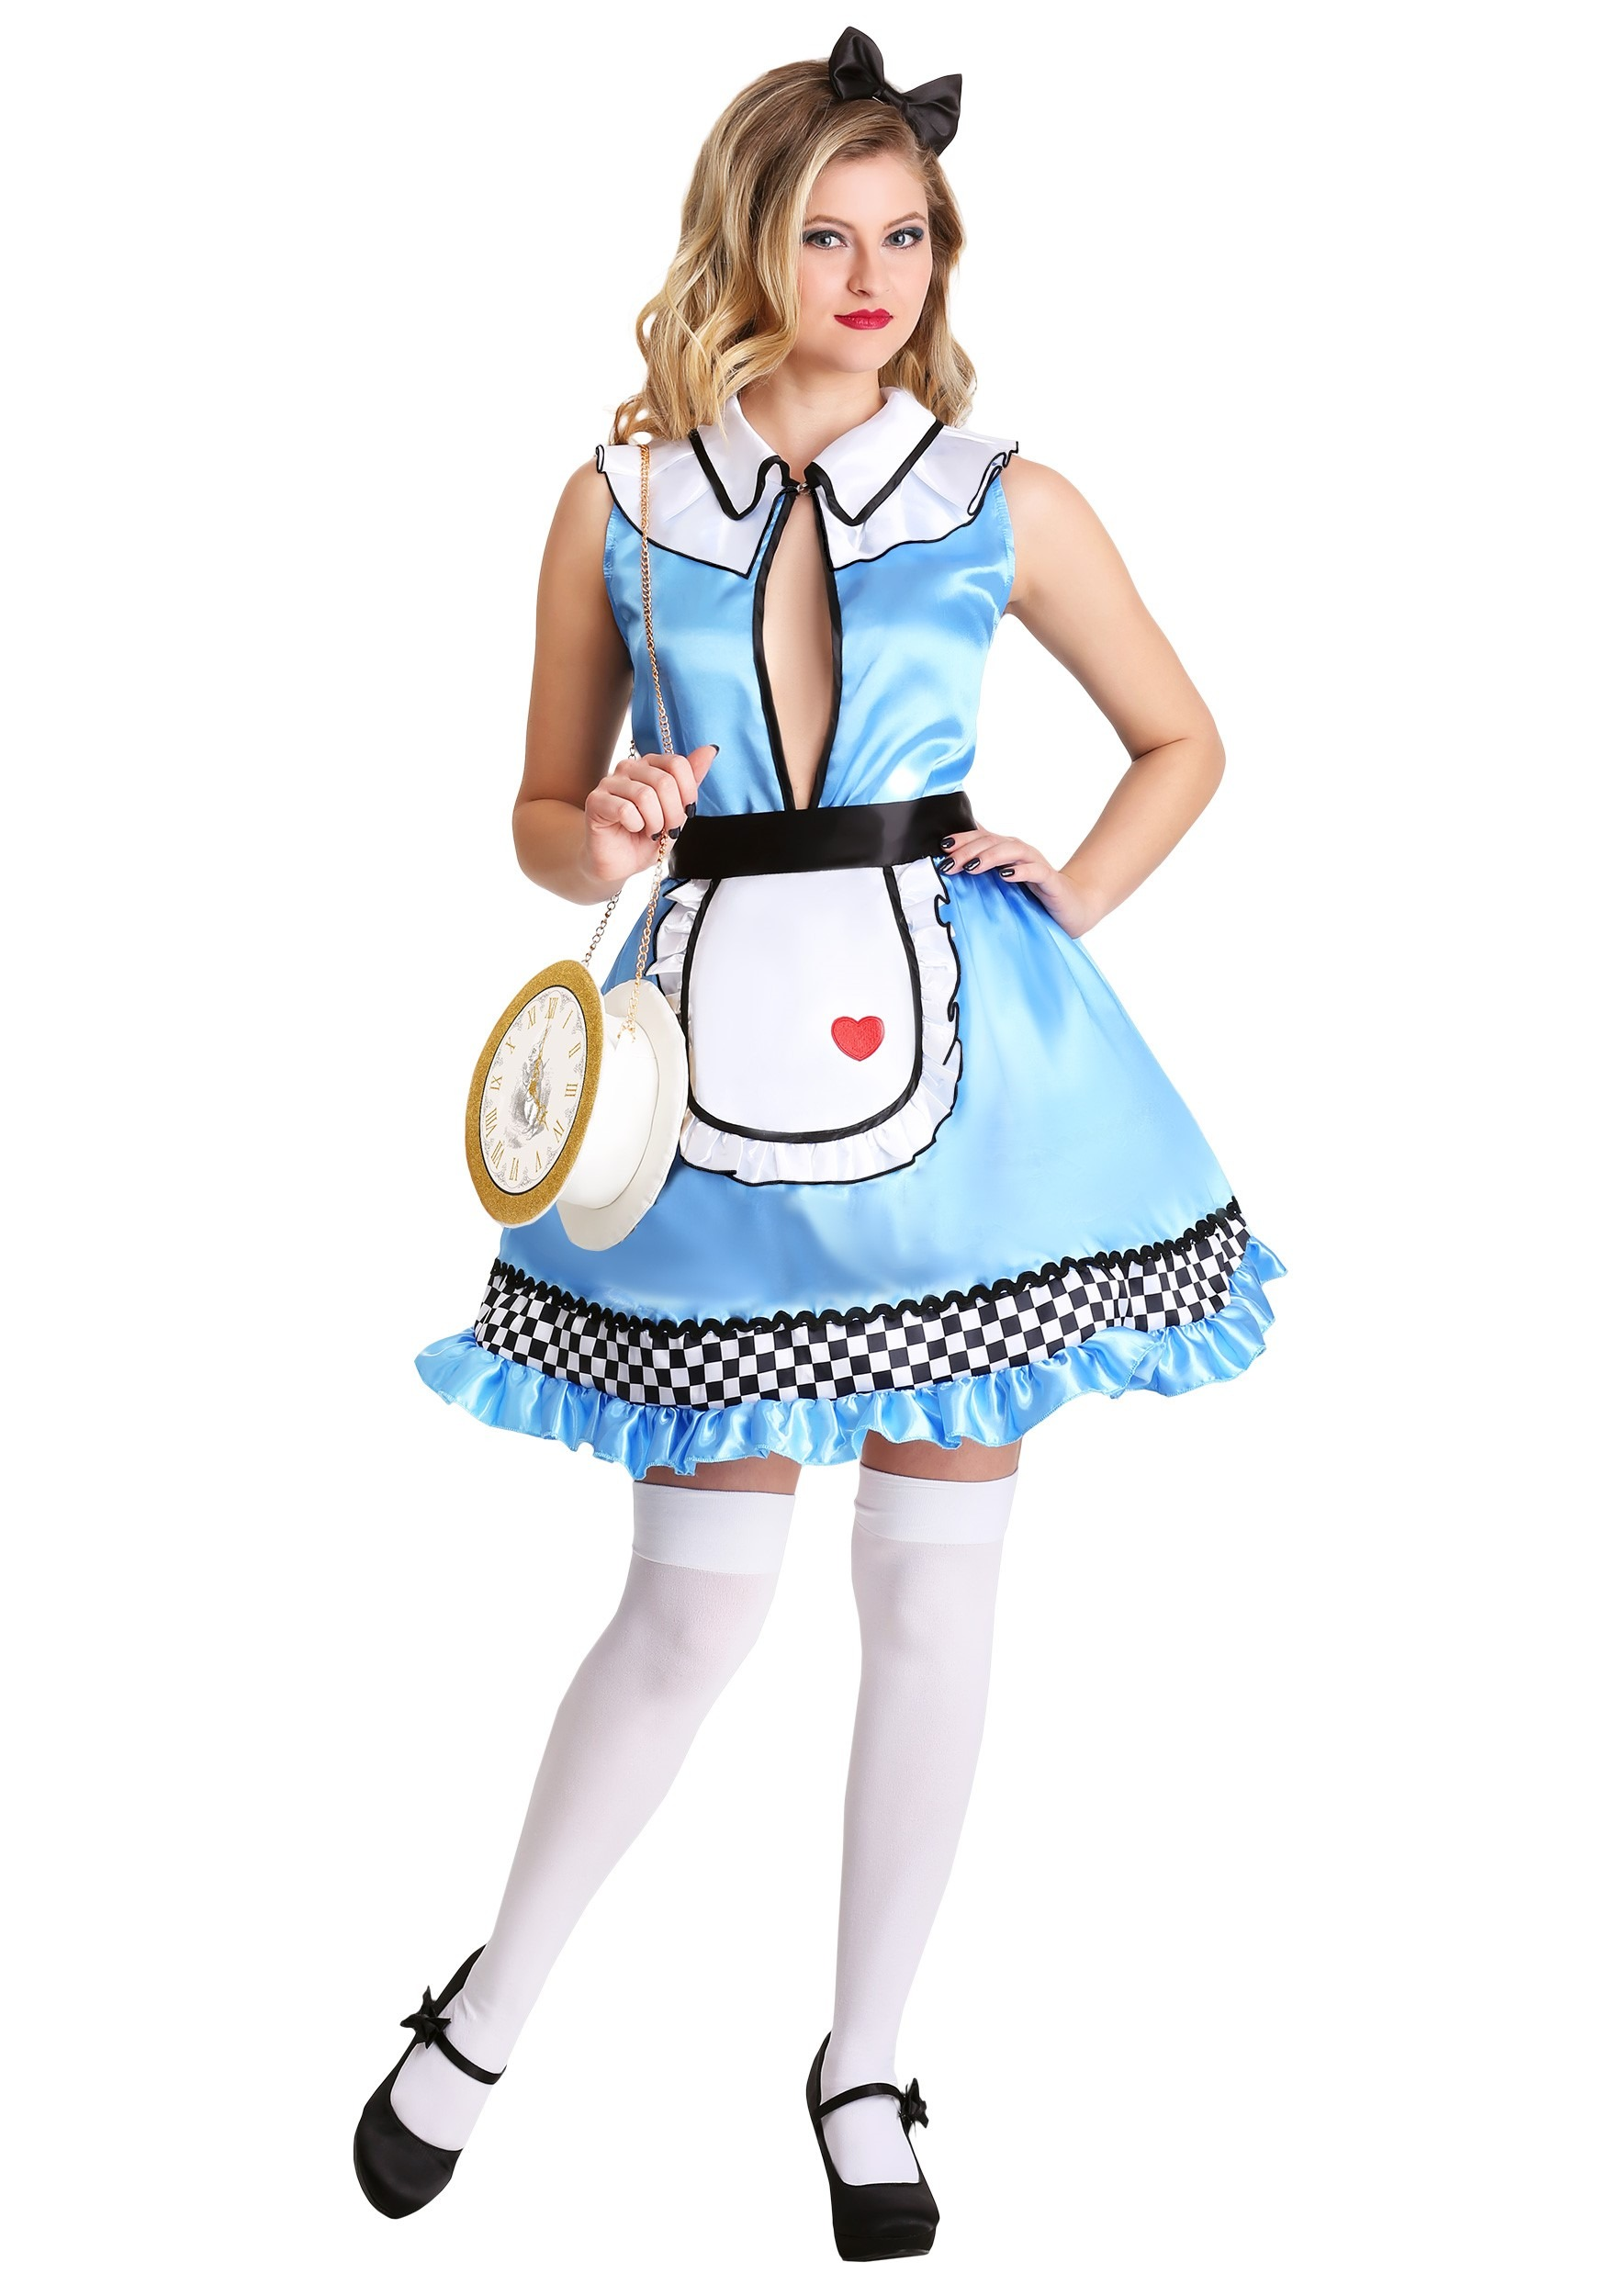 LADIES ALICE IN WONDERLAND CHARACTER APRON Design pick characters size trim